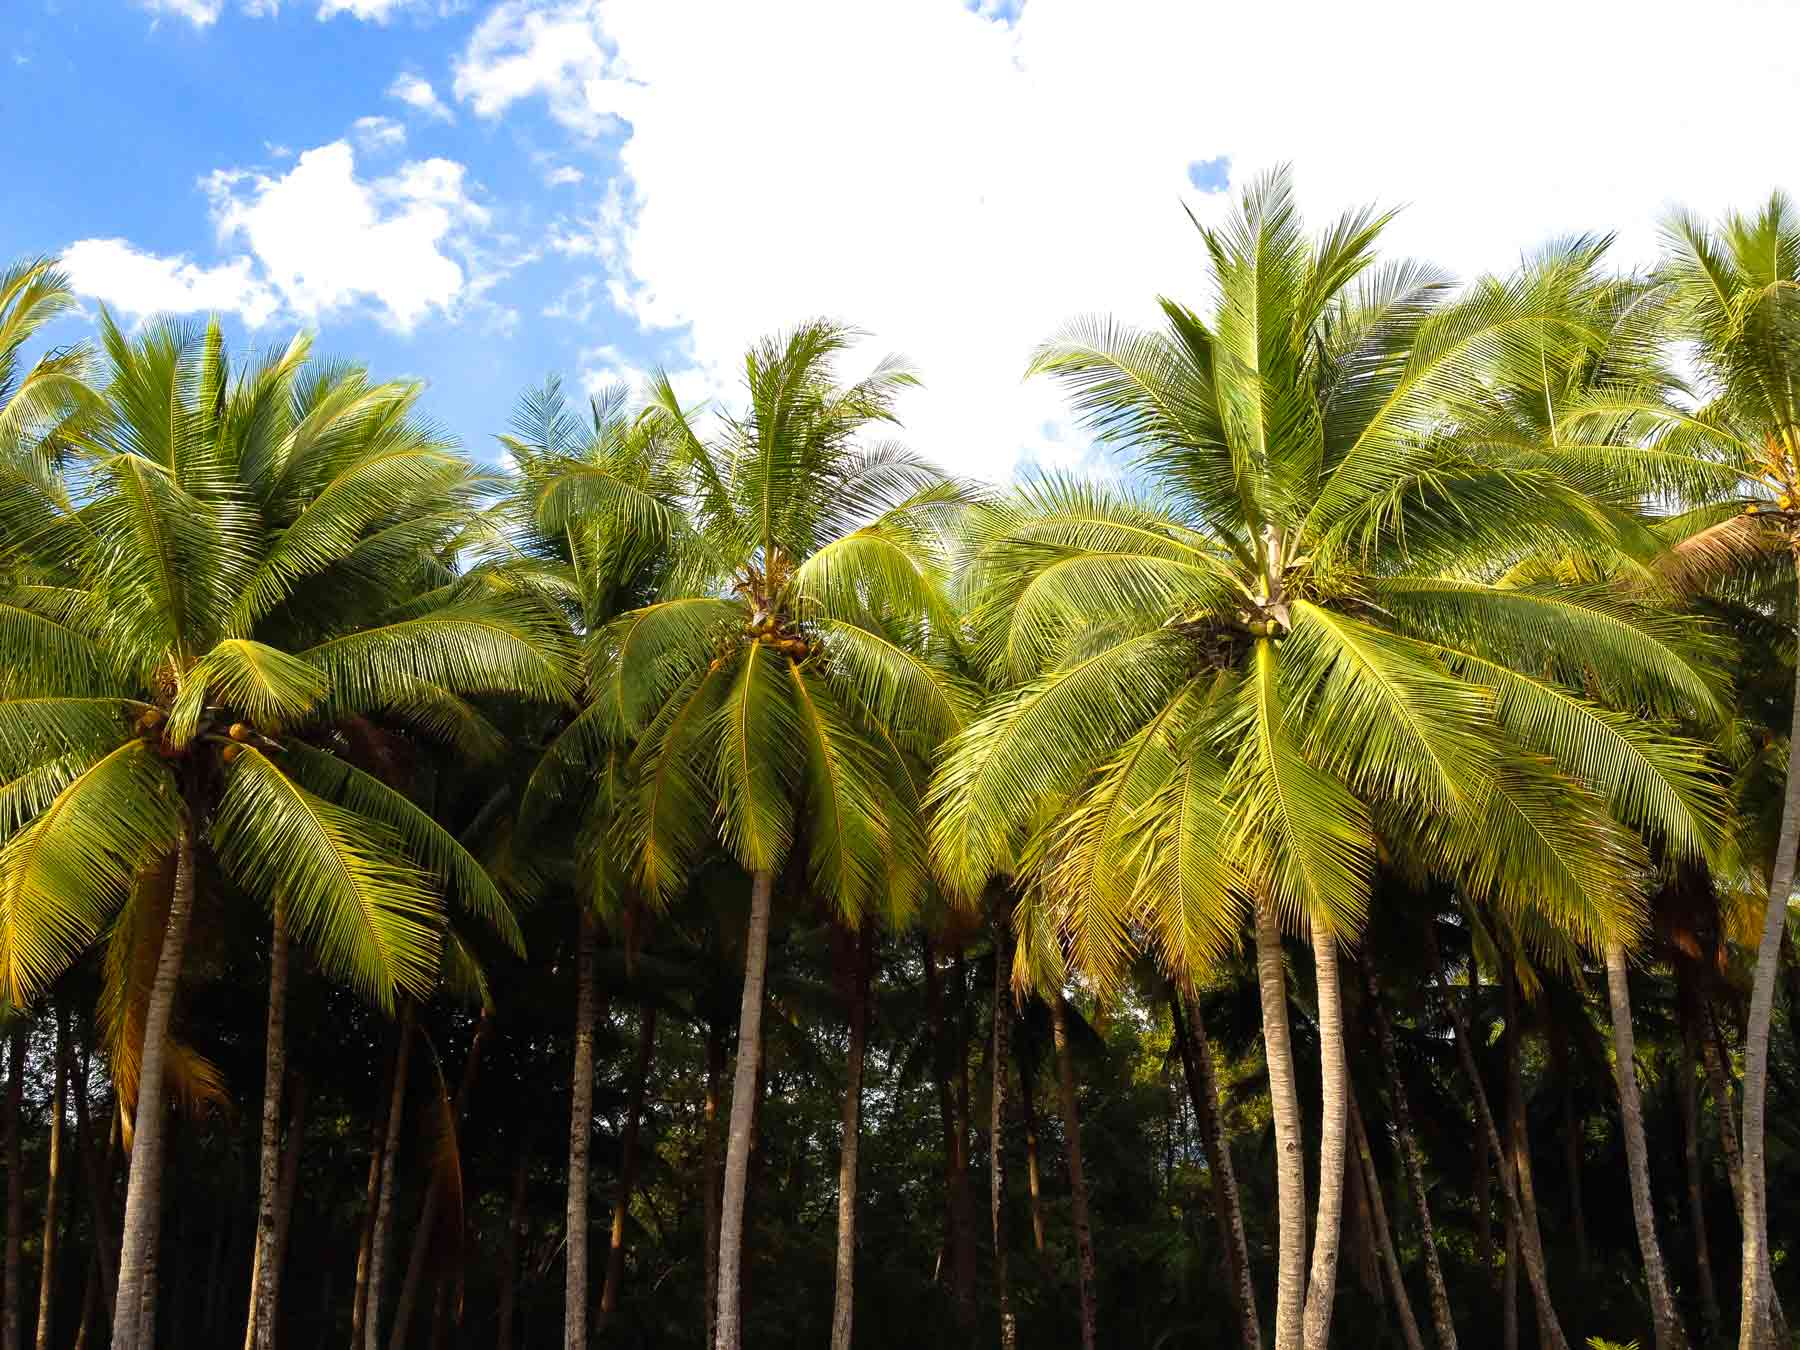 Palm trees line the shore at Marino Ballena National Park, Costa Rica.